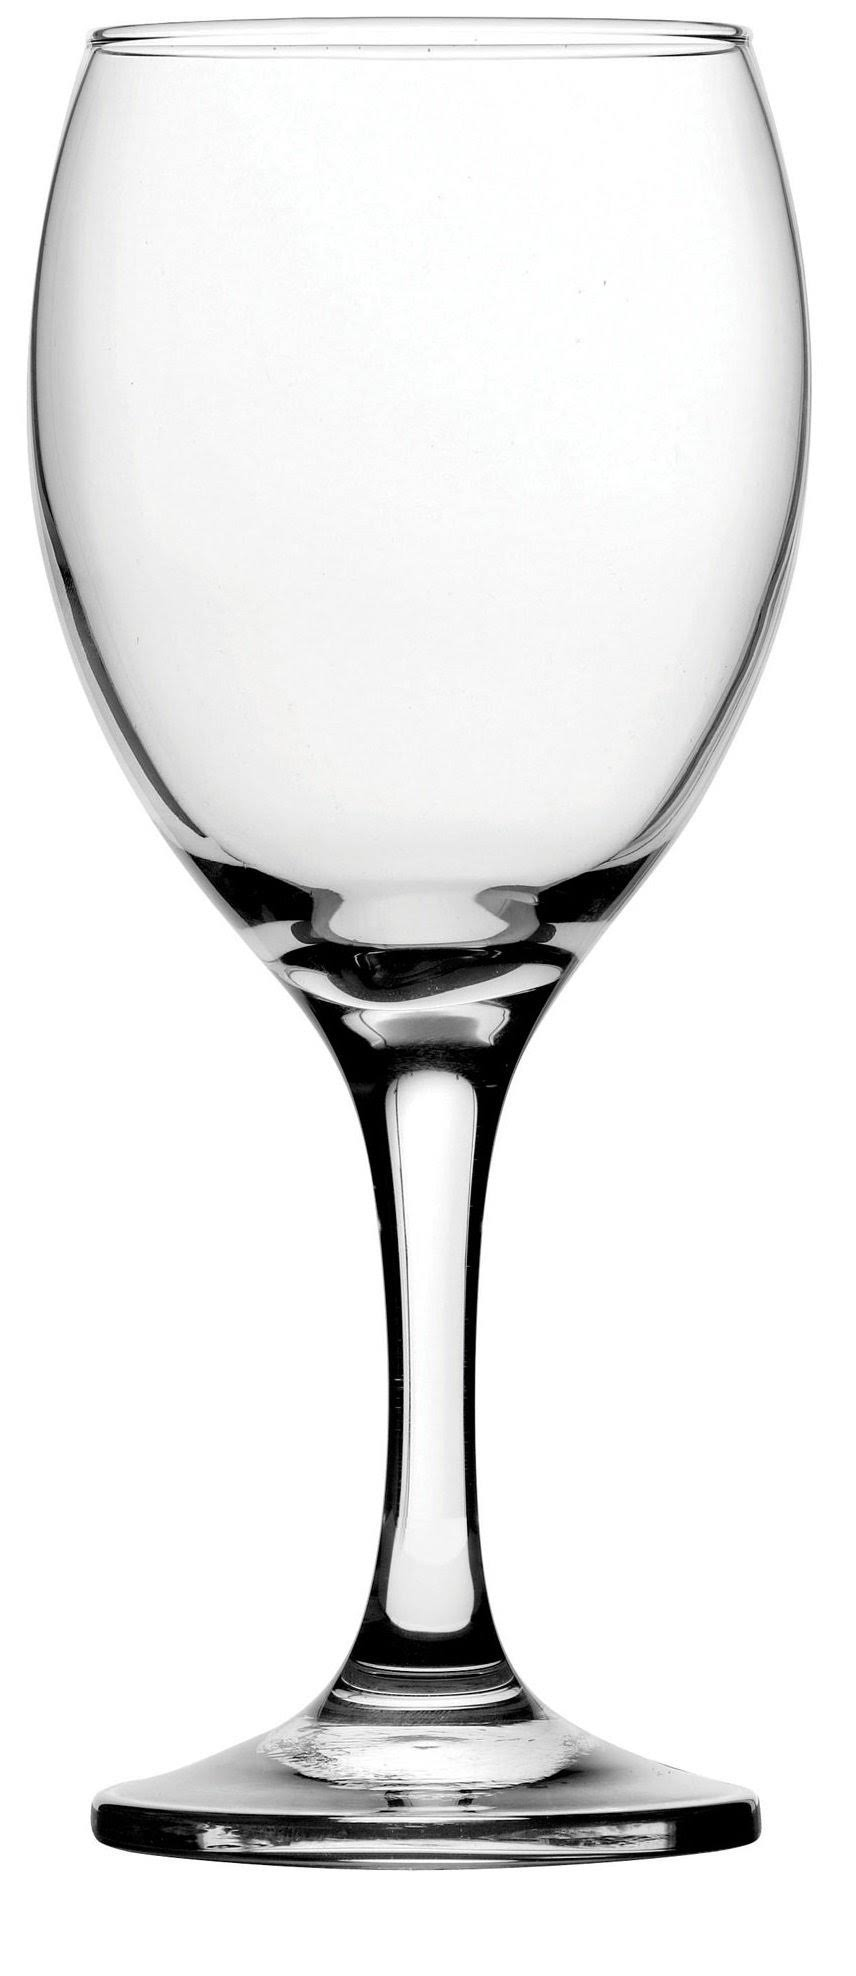 Circleware Hudson Market Wine Glasses Set of 4 8 oz. Clear